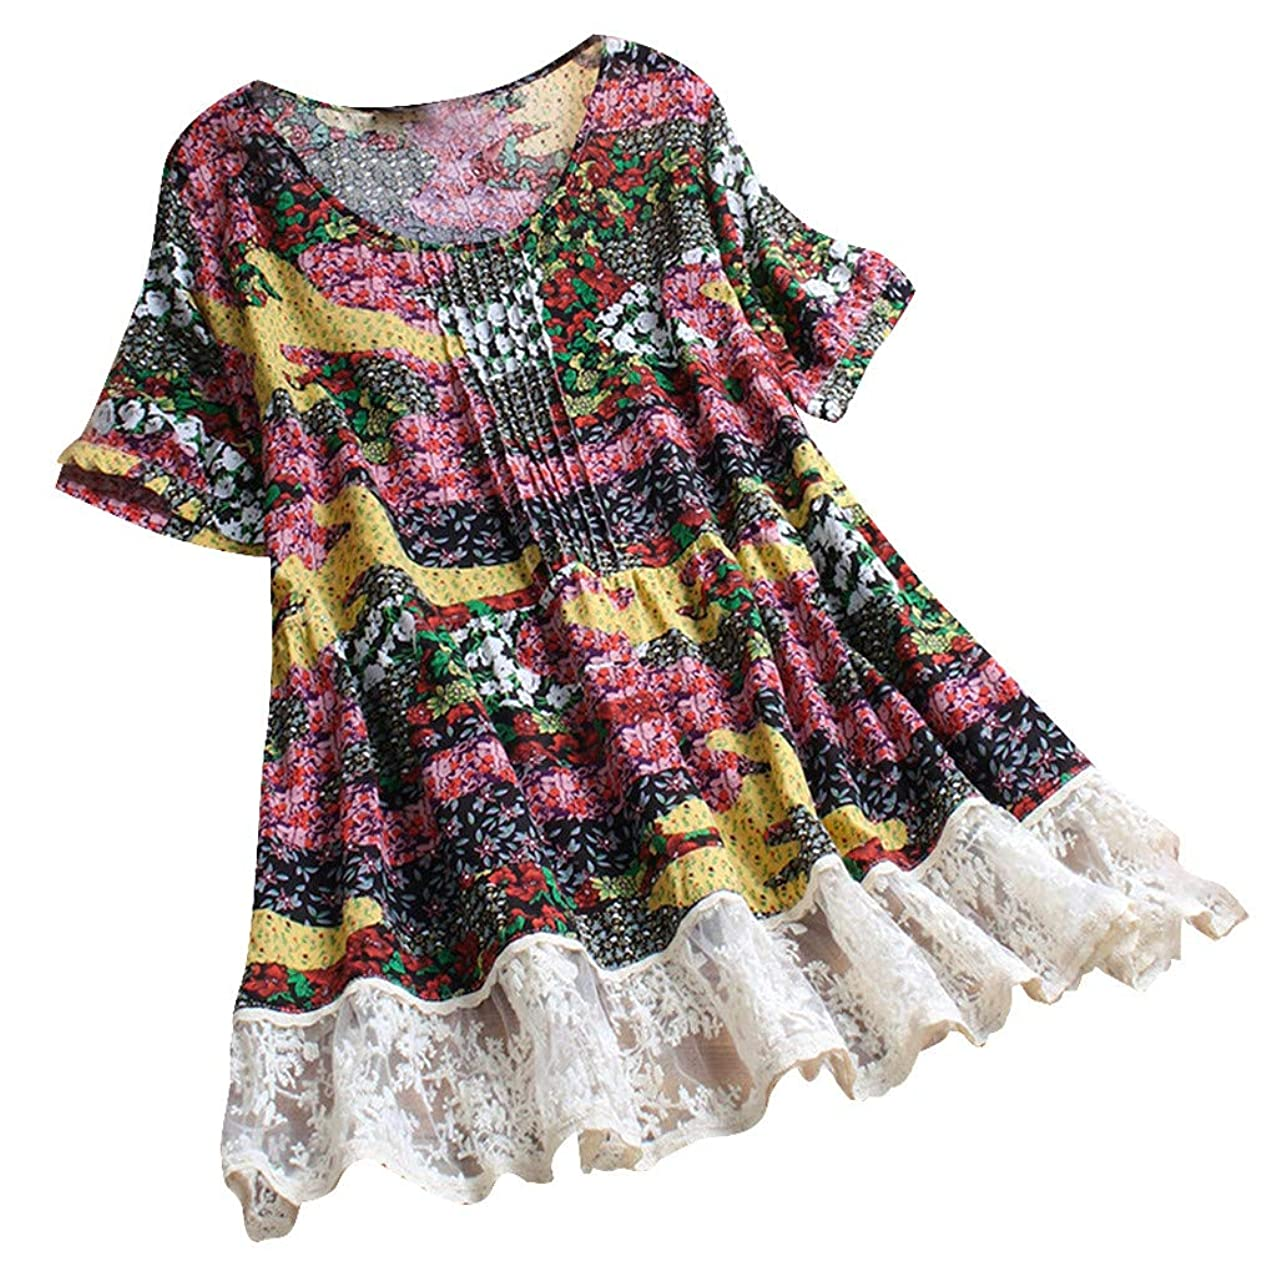 GHrcvdhw Women Pleated Lace Bohemia Floral prin Patchwork O-Neck Short Sleeve Linen Vintage Top T-Shirt Blouse